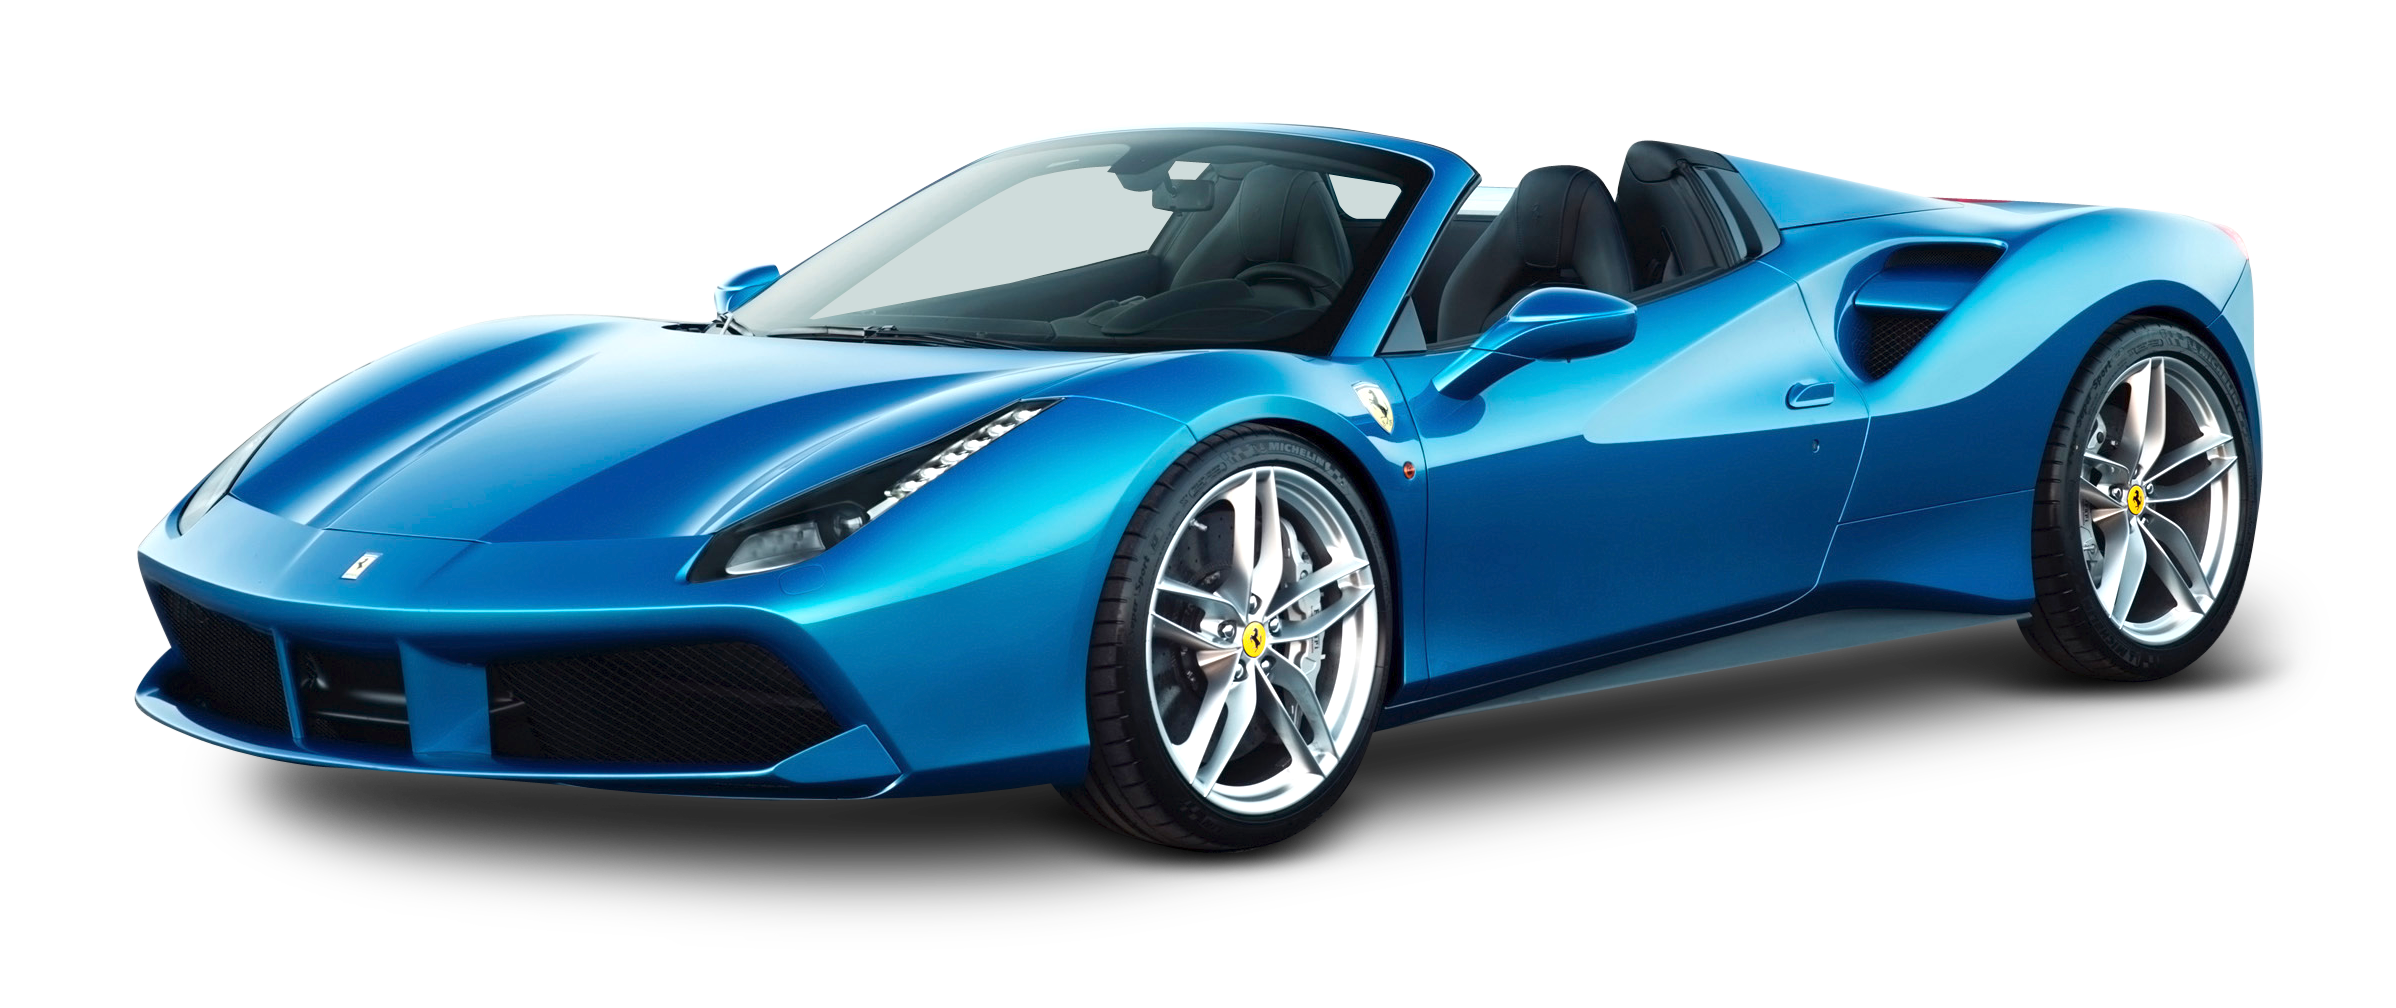 This high quality free PNG image without any background is about car,  ferrari, vehicle - Blue Race Car PNG